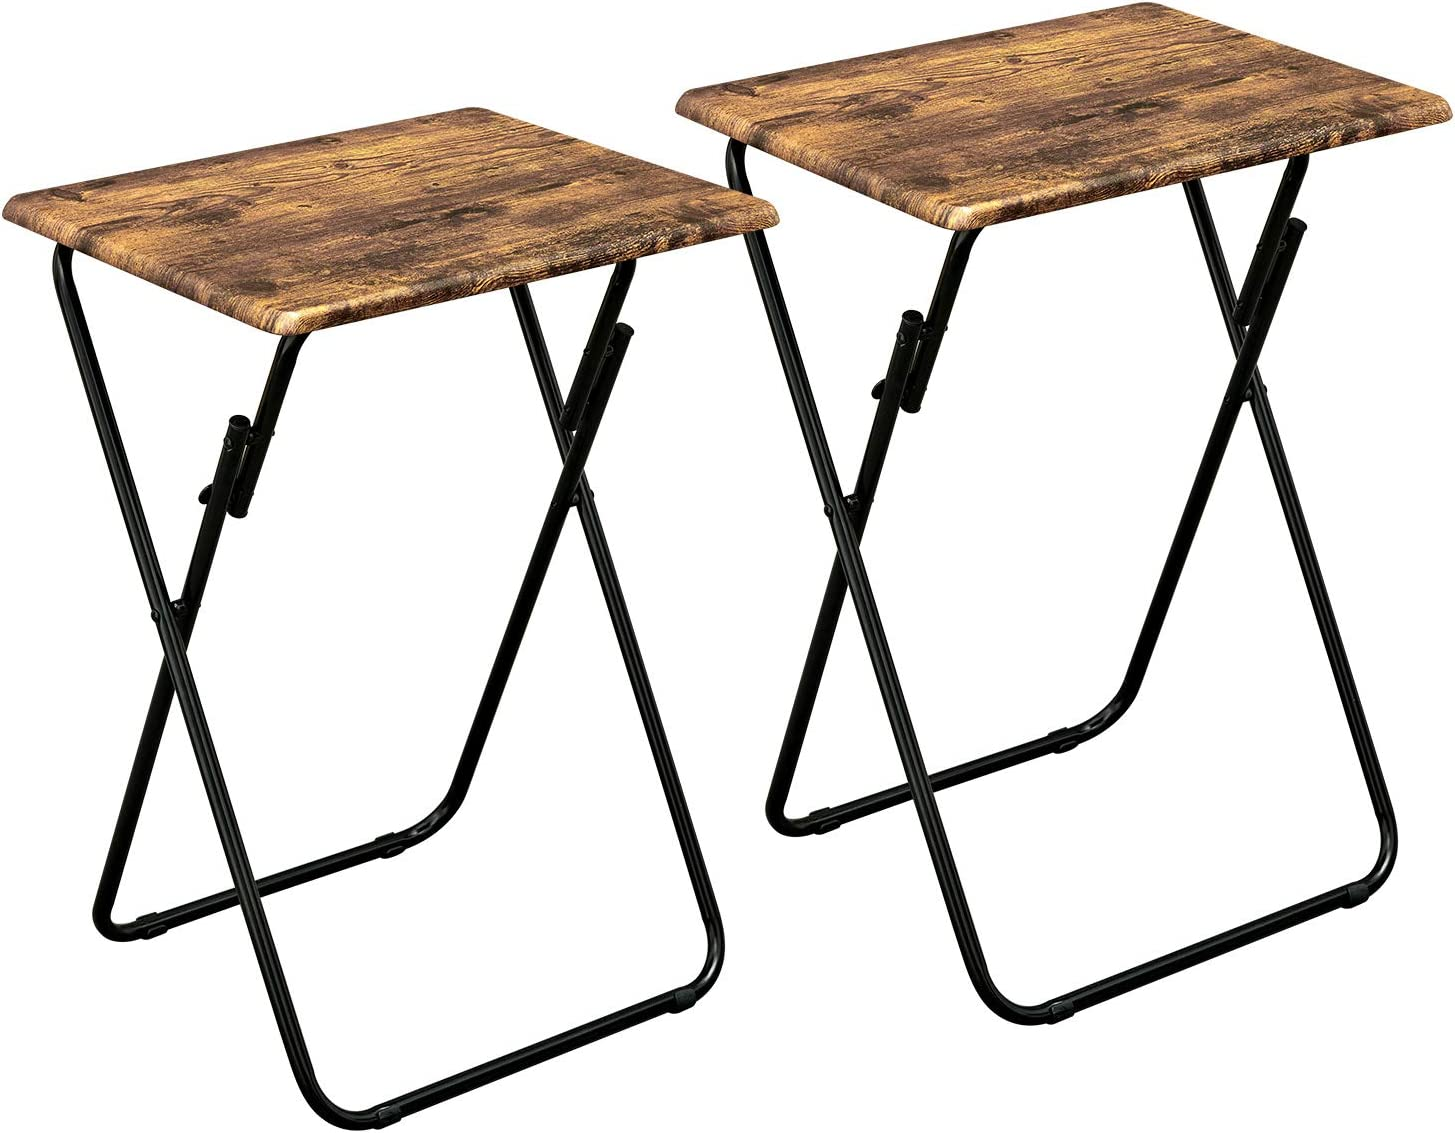 Aingoo No Assembly TV Trays Set of 2 Small Snack Tables for Eating Pinic Multi-Function Dinner Desk with Wood Top and Metal Frame Vintage